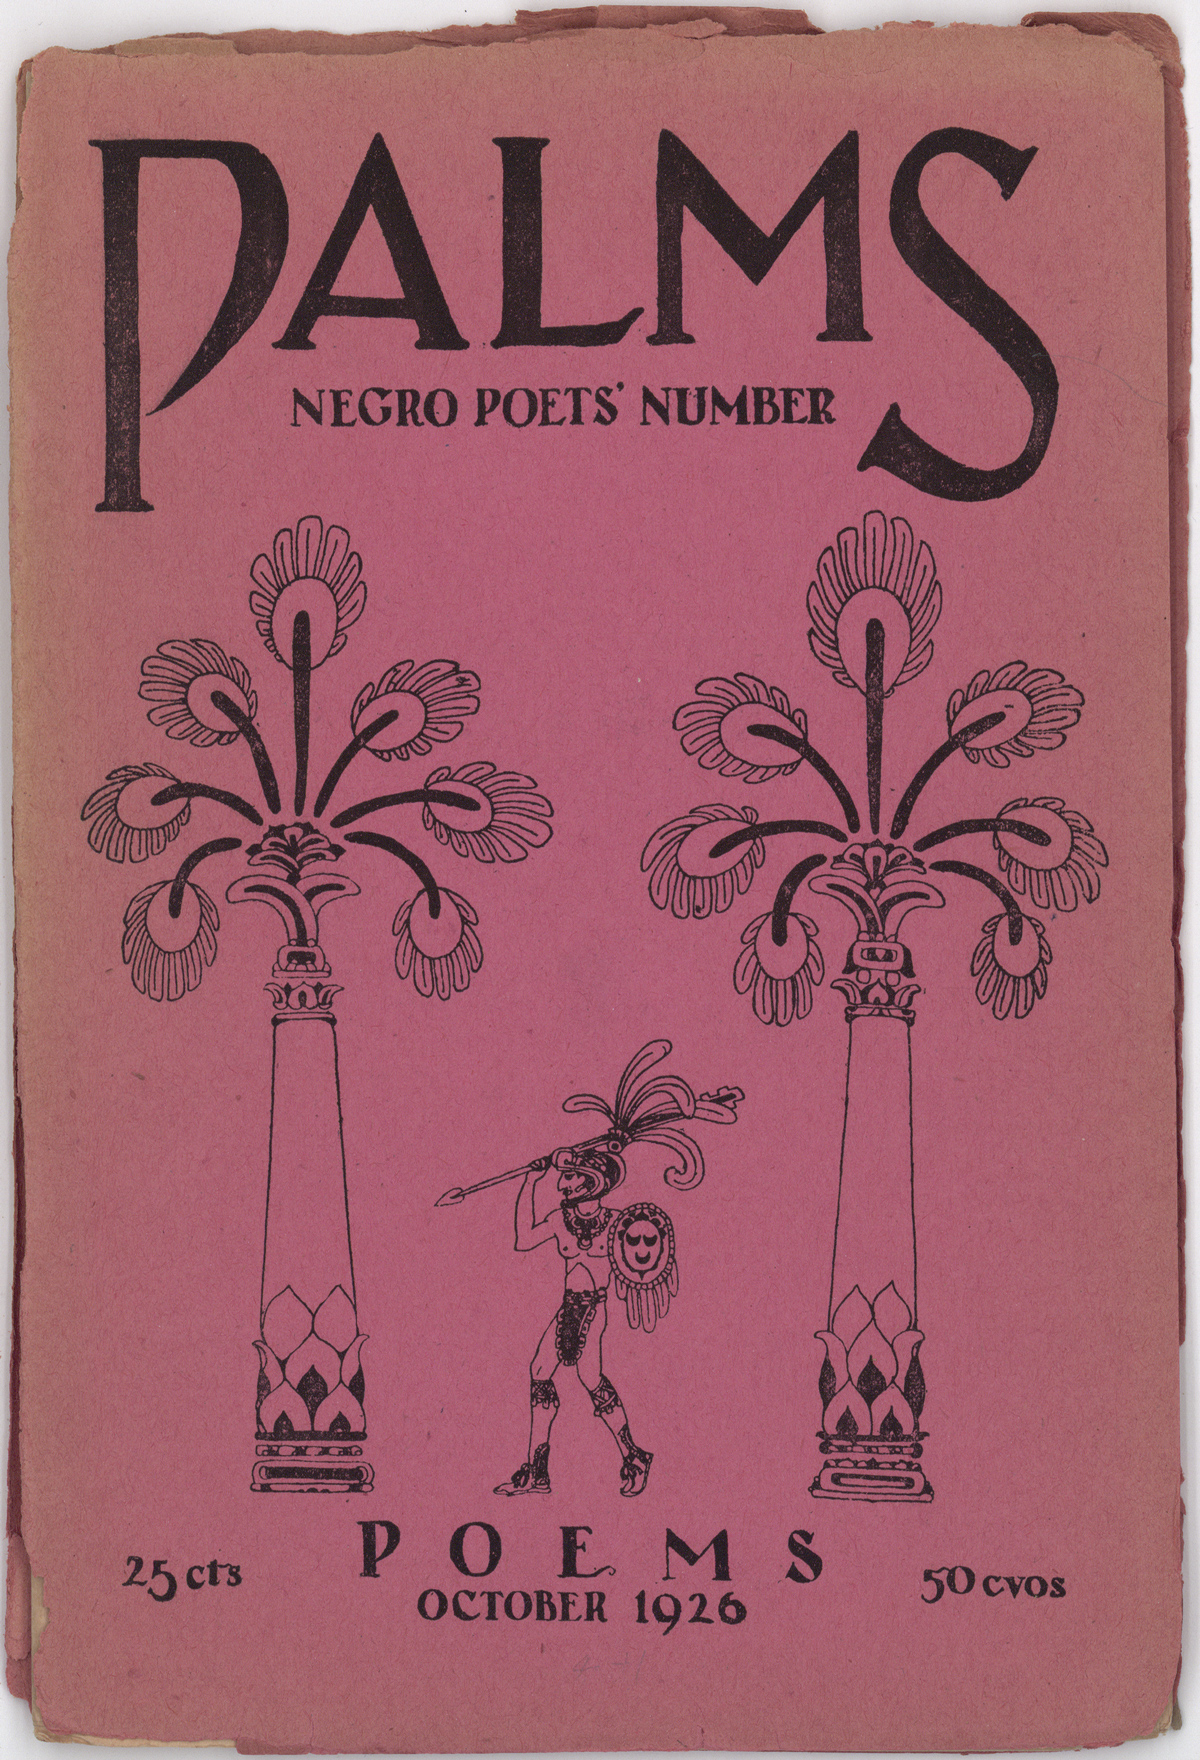 "The Palms ""Negro Poet's Number"" (October 1926)."